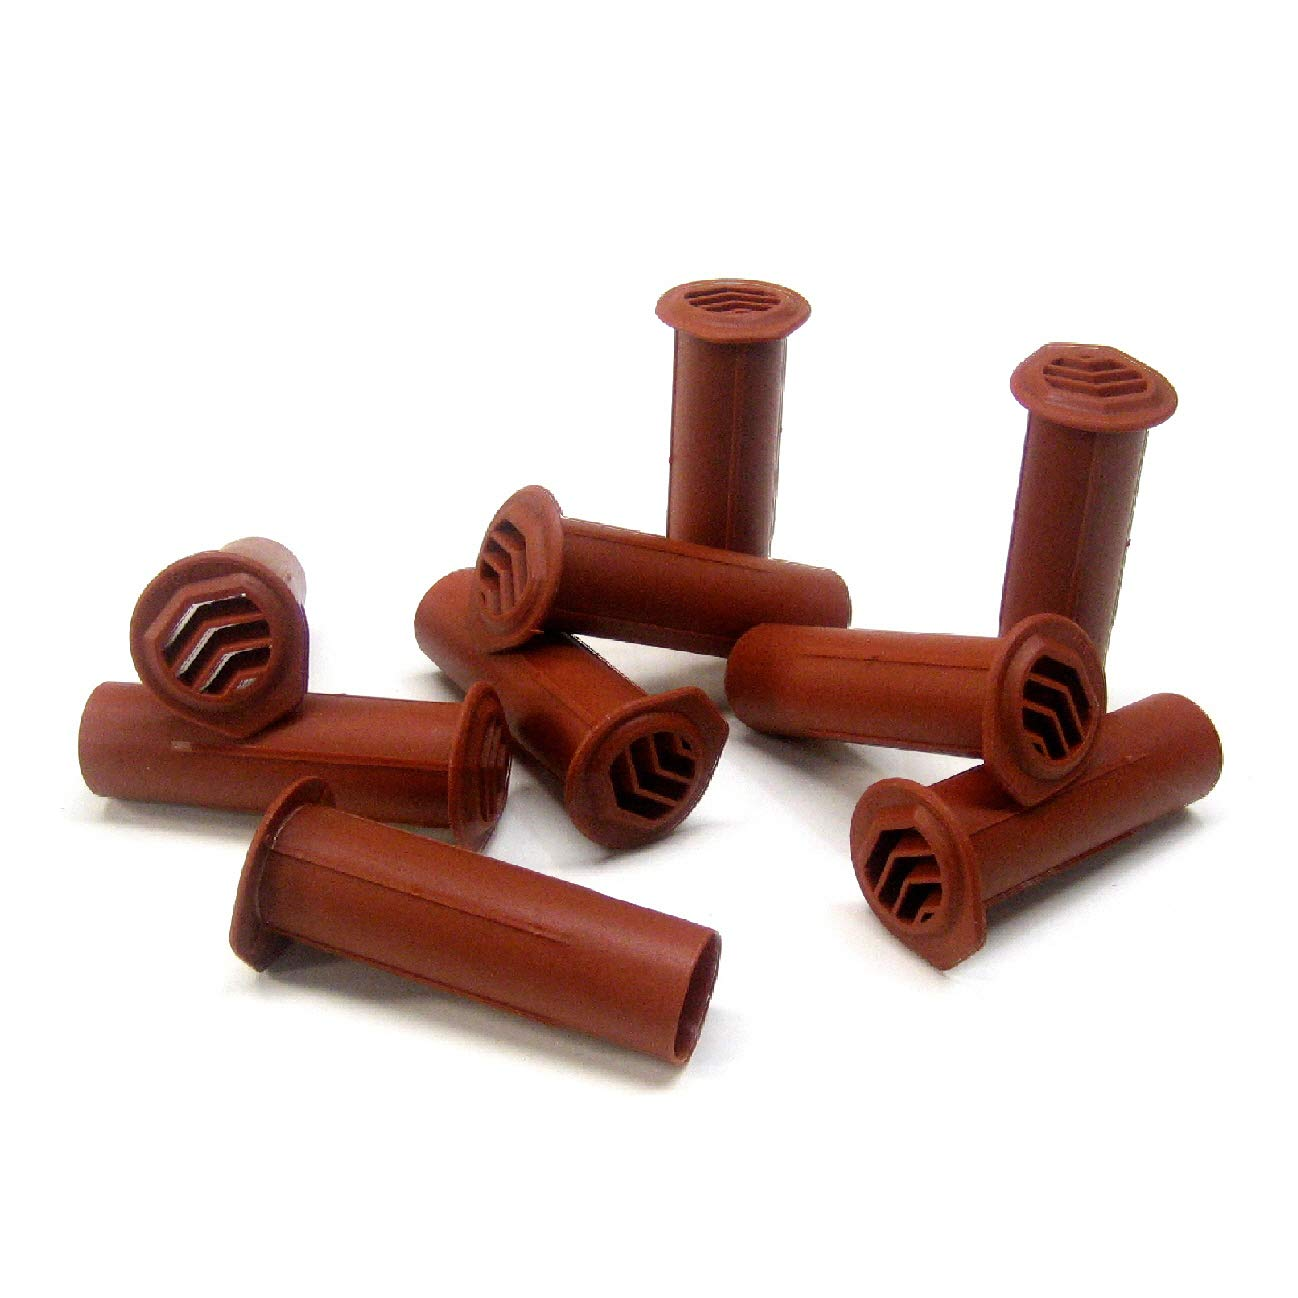 10 x Terracotta Drill Weep Vents Round Venting System Cavity / Retaining Walls Wall Manthorpe